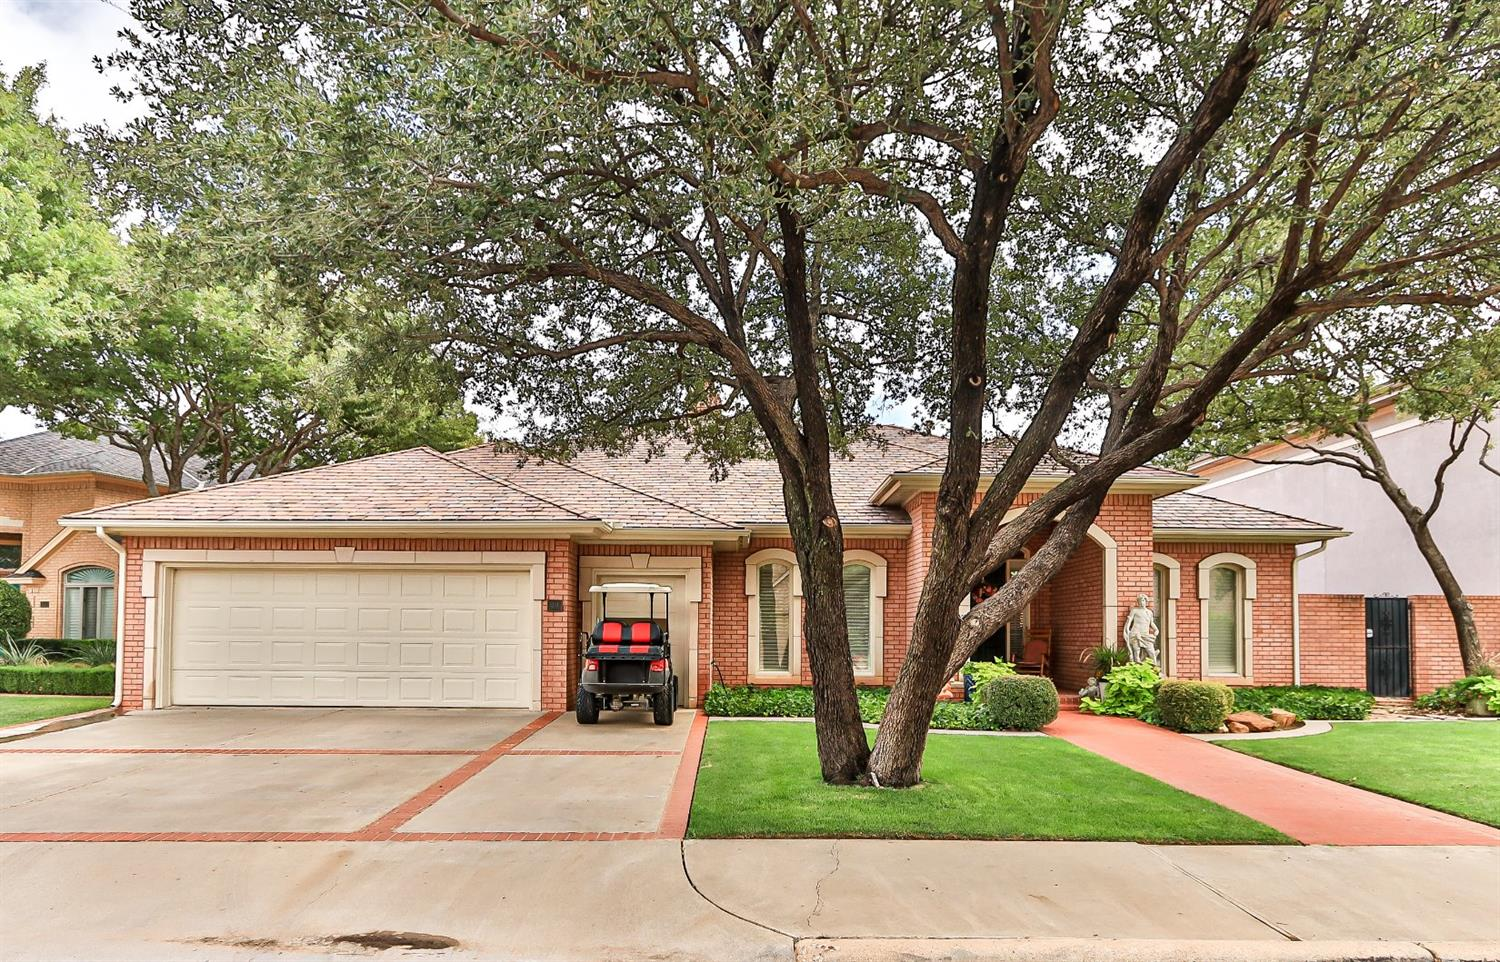 Life is good in this gated/secure neighborhood. 3/4/2 with golf cart garage. Patio/ pool views from all living areas.This is a beautiful neighborhood. Saltwater pool overlooks golf course.  Updated with hardwood floors, new lifetime roof.  Single story, established Lakeridge country club.